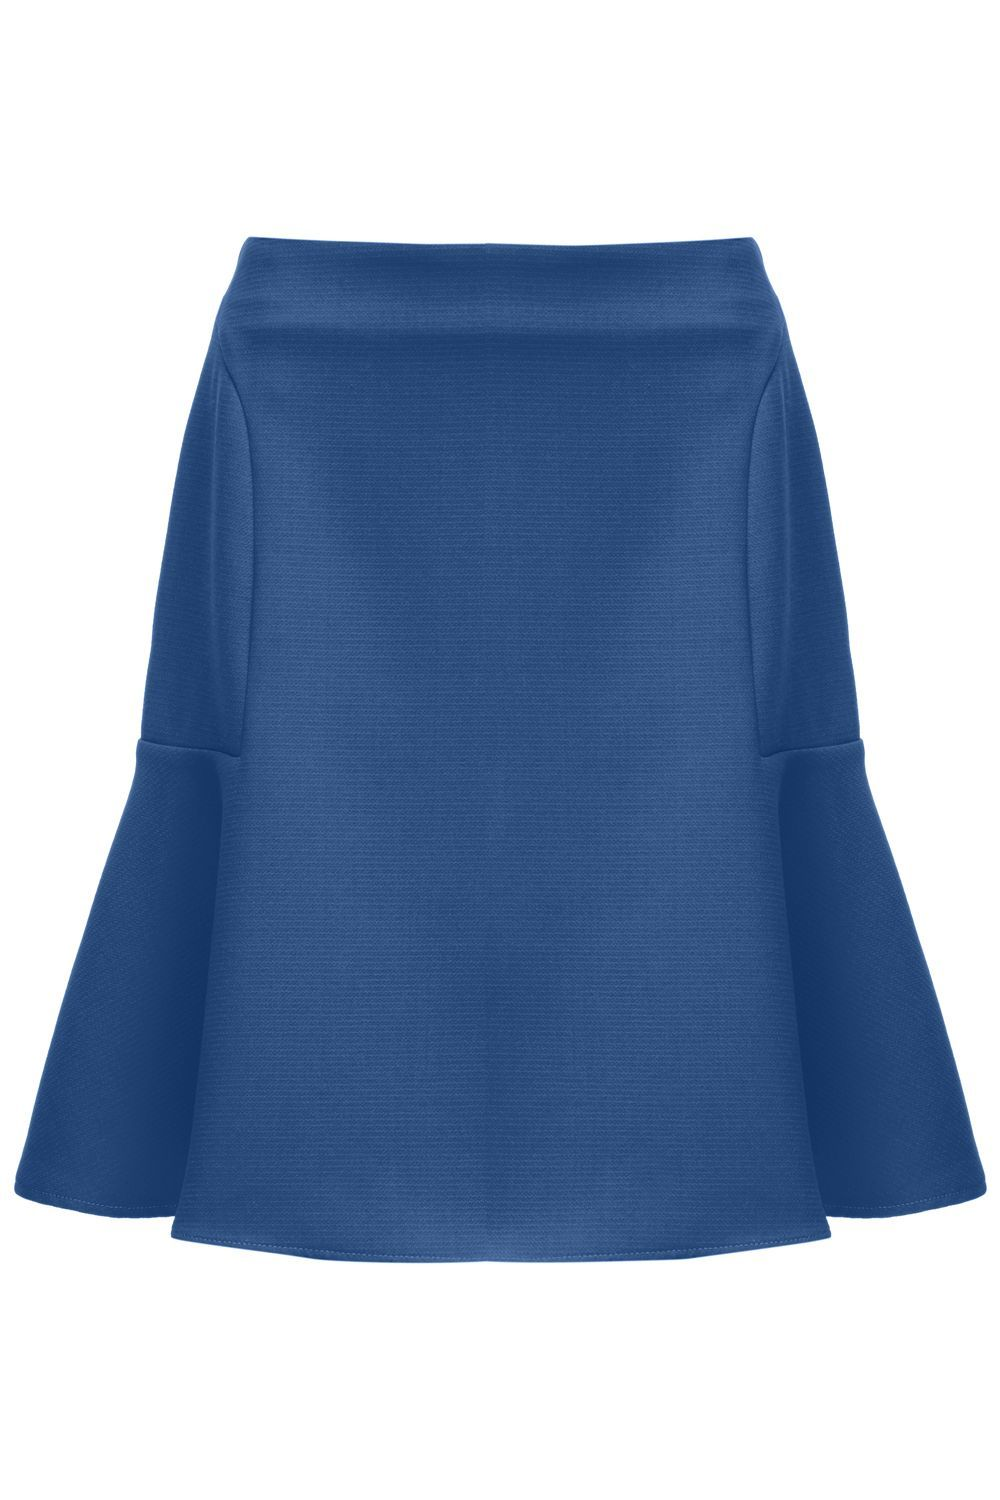 Skater Skirt, Blue - pattern: plain; style: full/prom skirt; fit: loose/voluminous; waist: high rise; predominant colour: denim; occasions: work, creative work; length: just above the knee; fibres: polyester/polyamide - 100%; hip detail: structured pleats at hip; pattern type: fabric; texture group: woven light midweight; season: s/s 2016; wardrobe: highlight